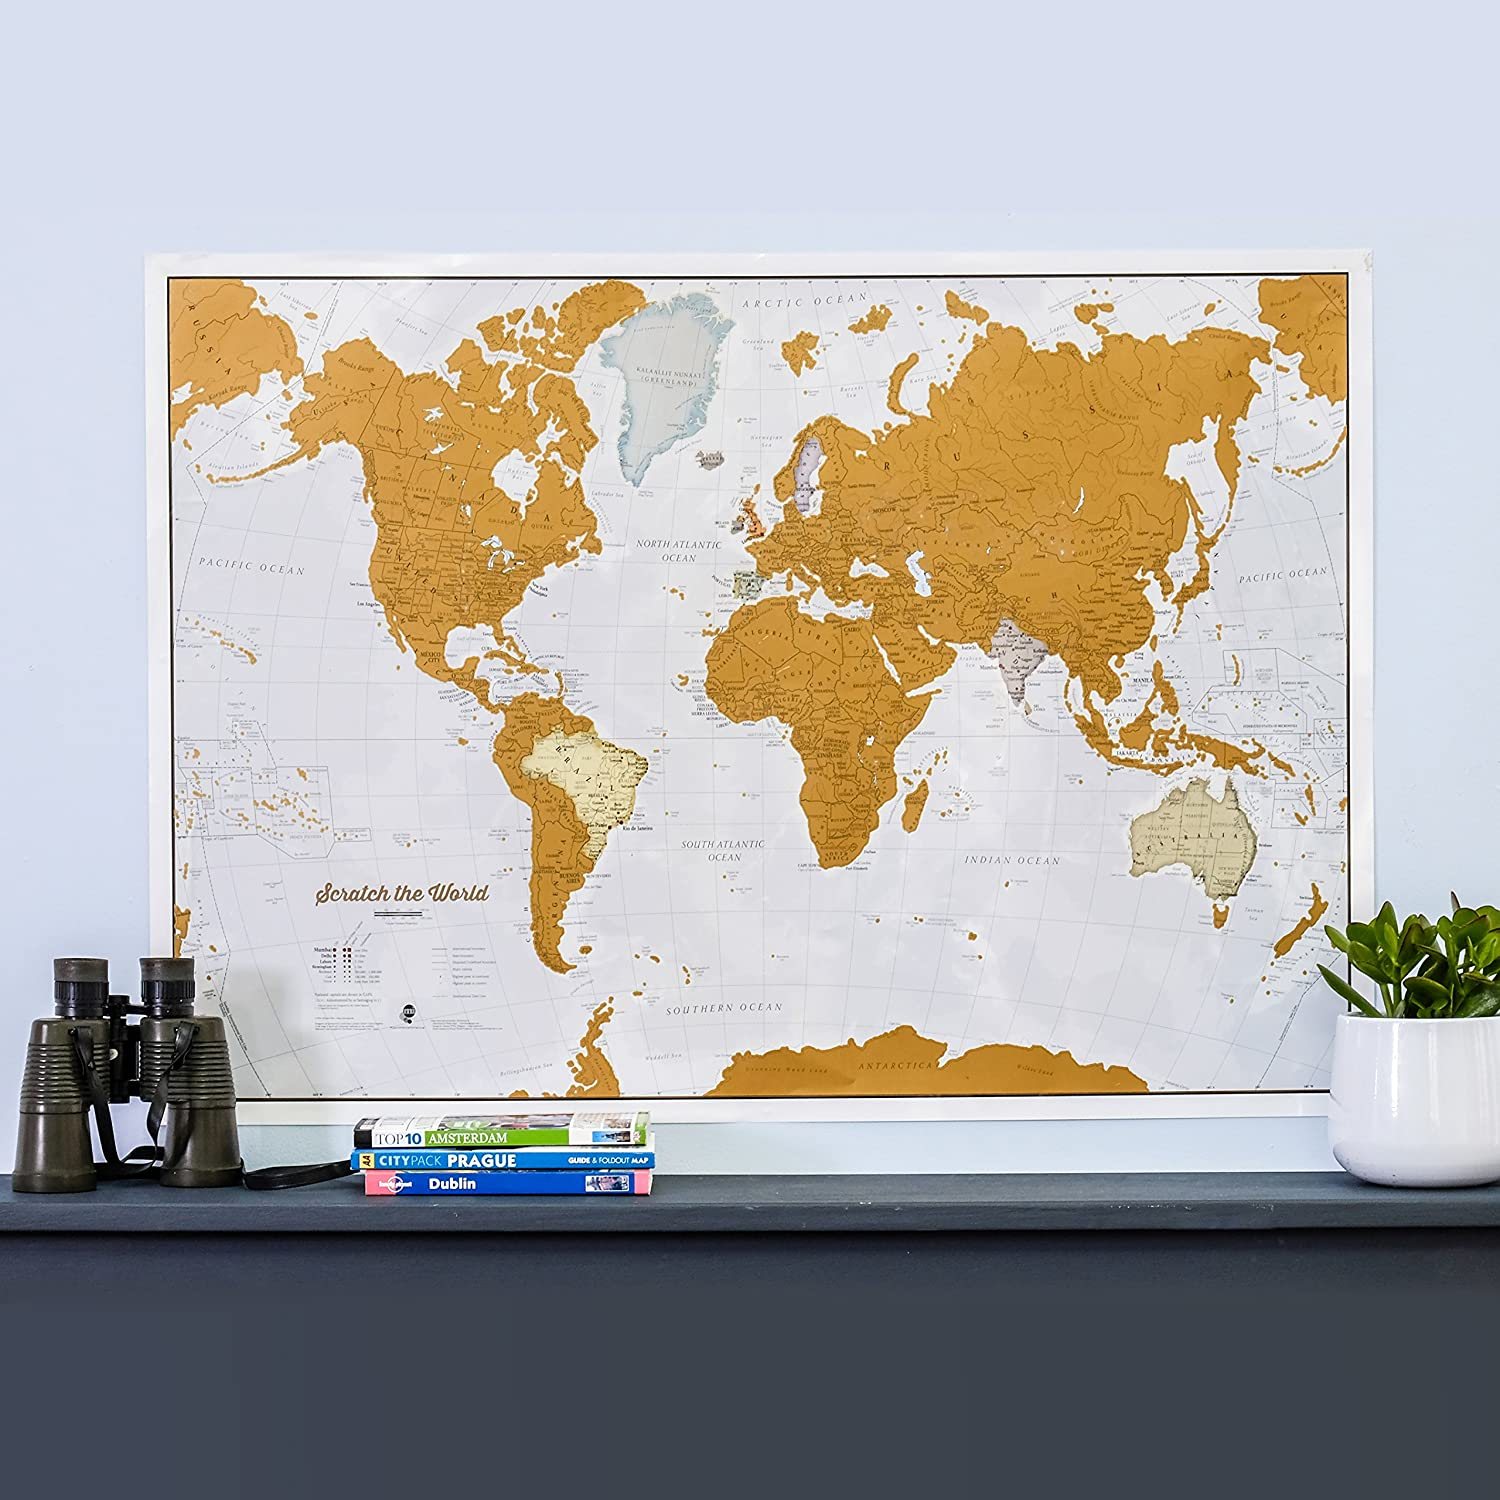 Amazon maps international scratch the world travel map amazon maps international scratch the world travel map scratch off world map poster most detailed cartography 33 x 23 office products gumiabroncs Image collections